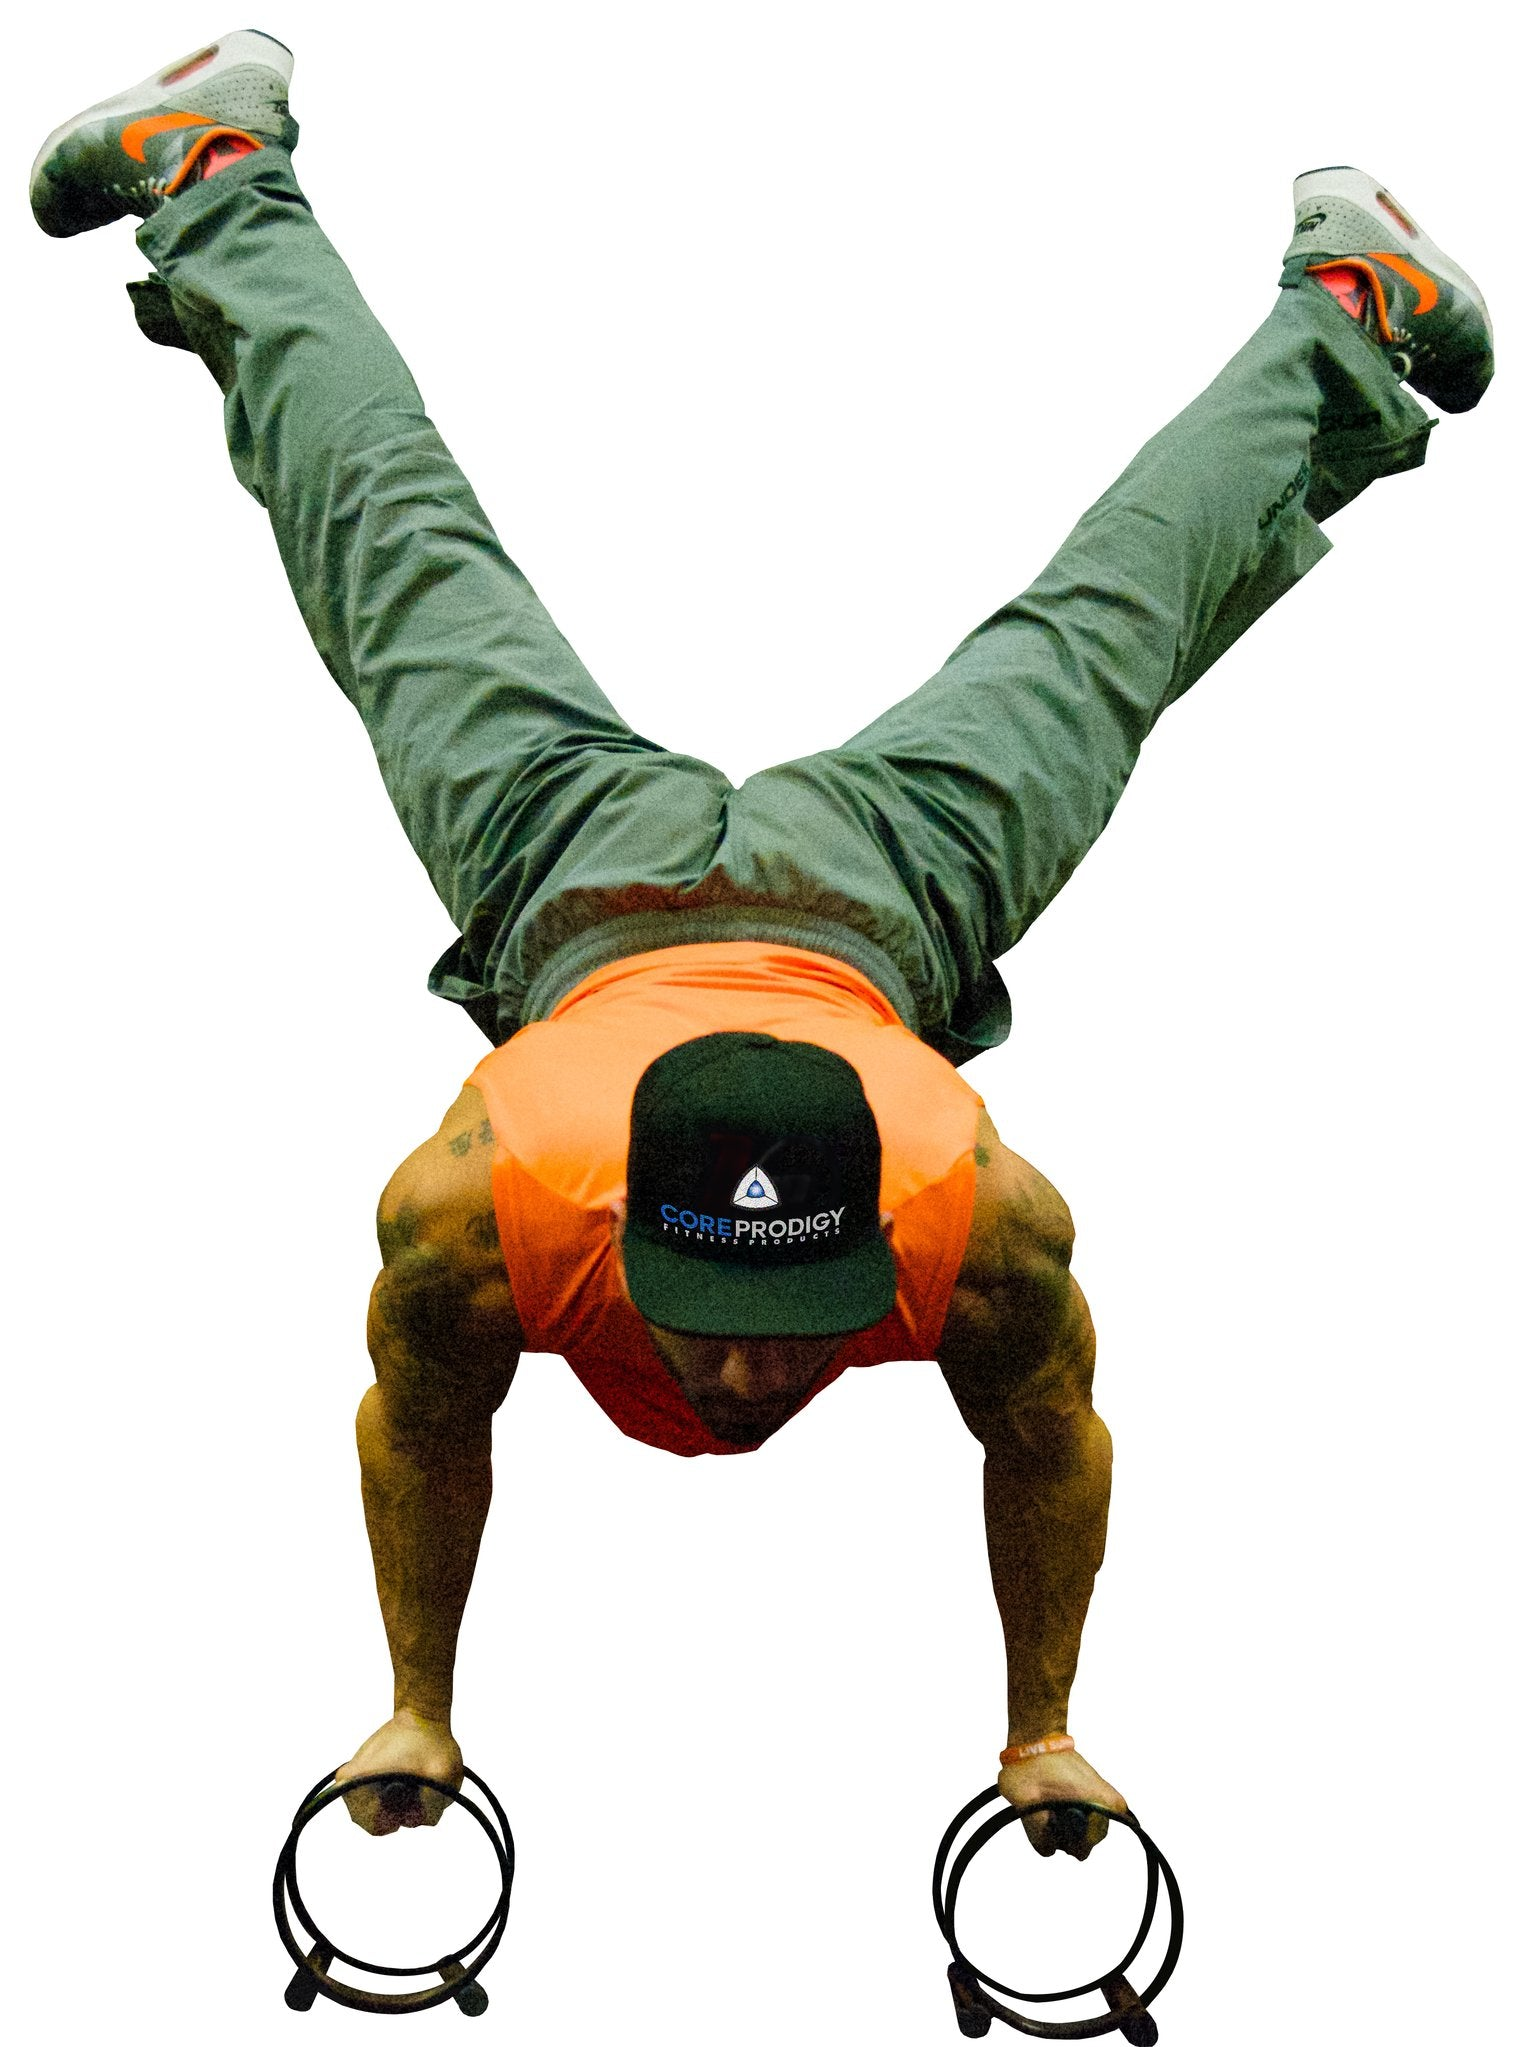 P-Fit Handstand by Core Prodigy